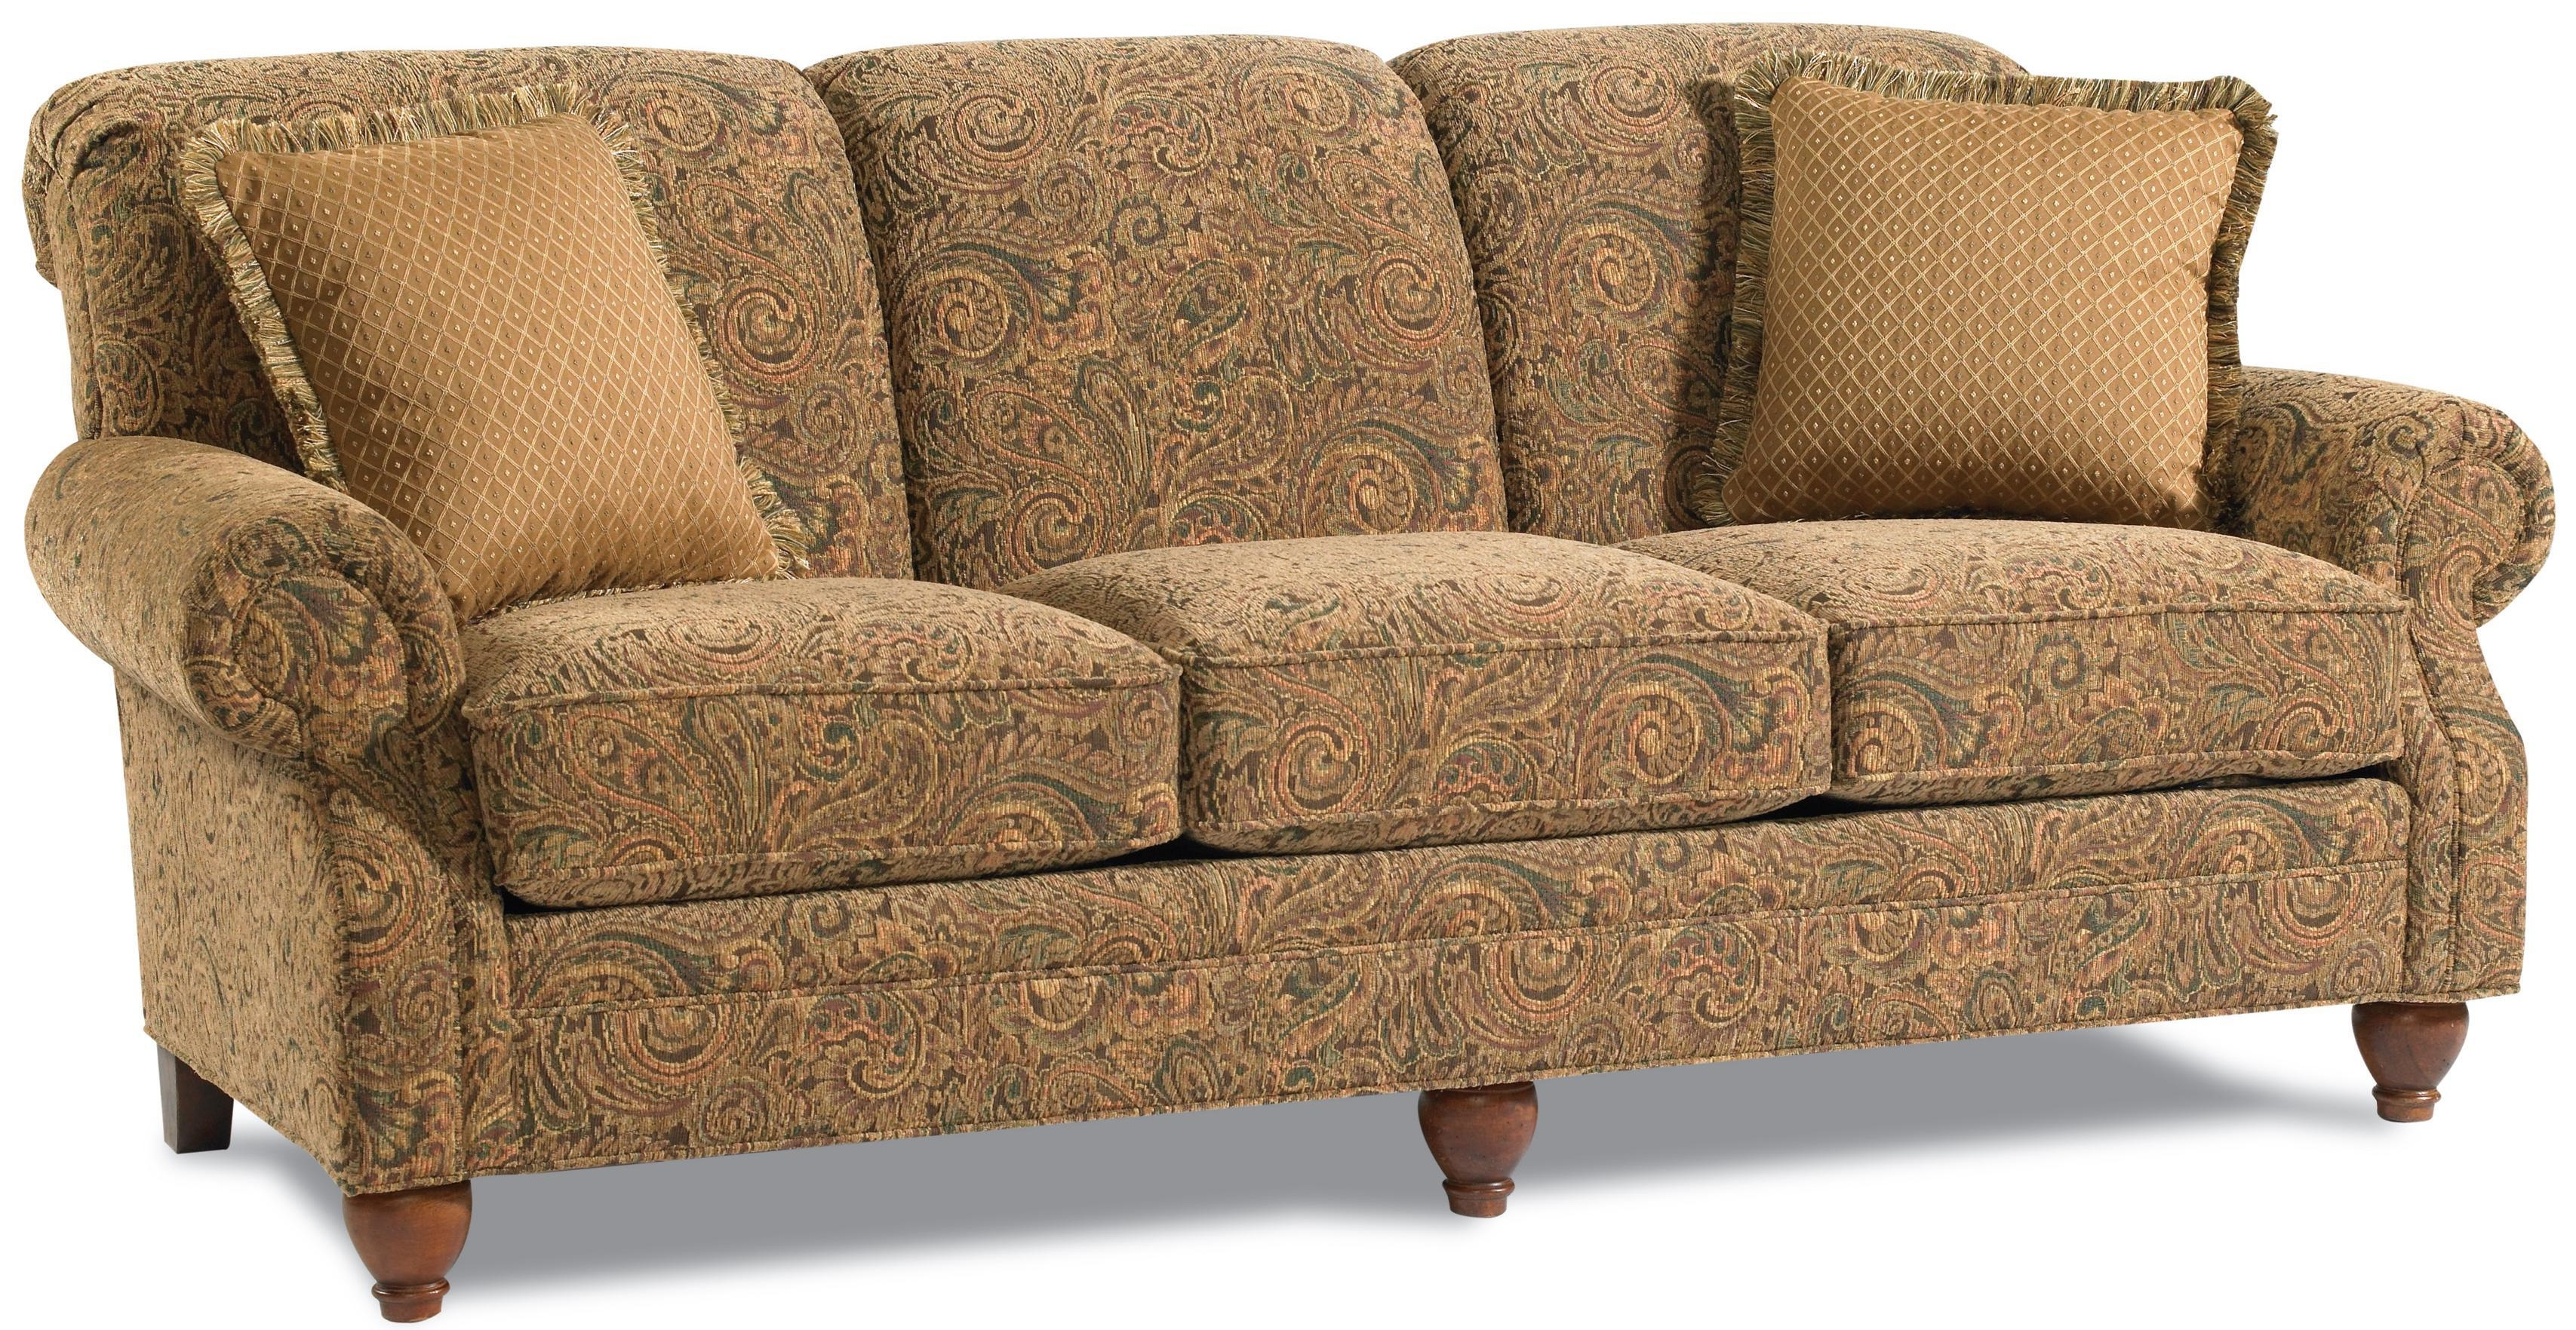 Featured Image of Clayton Marcus Sofas